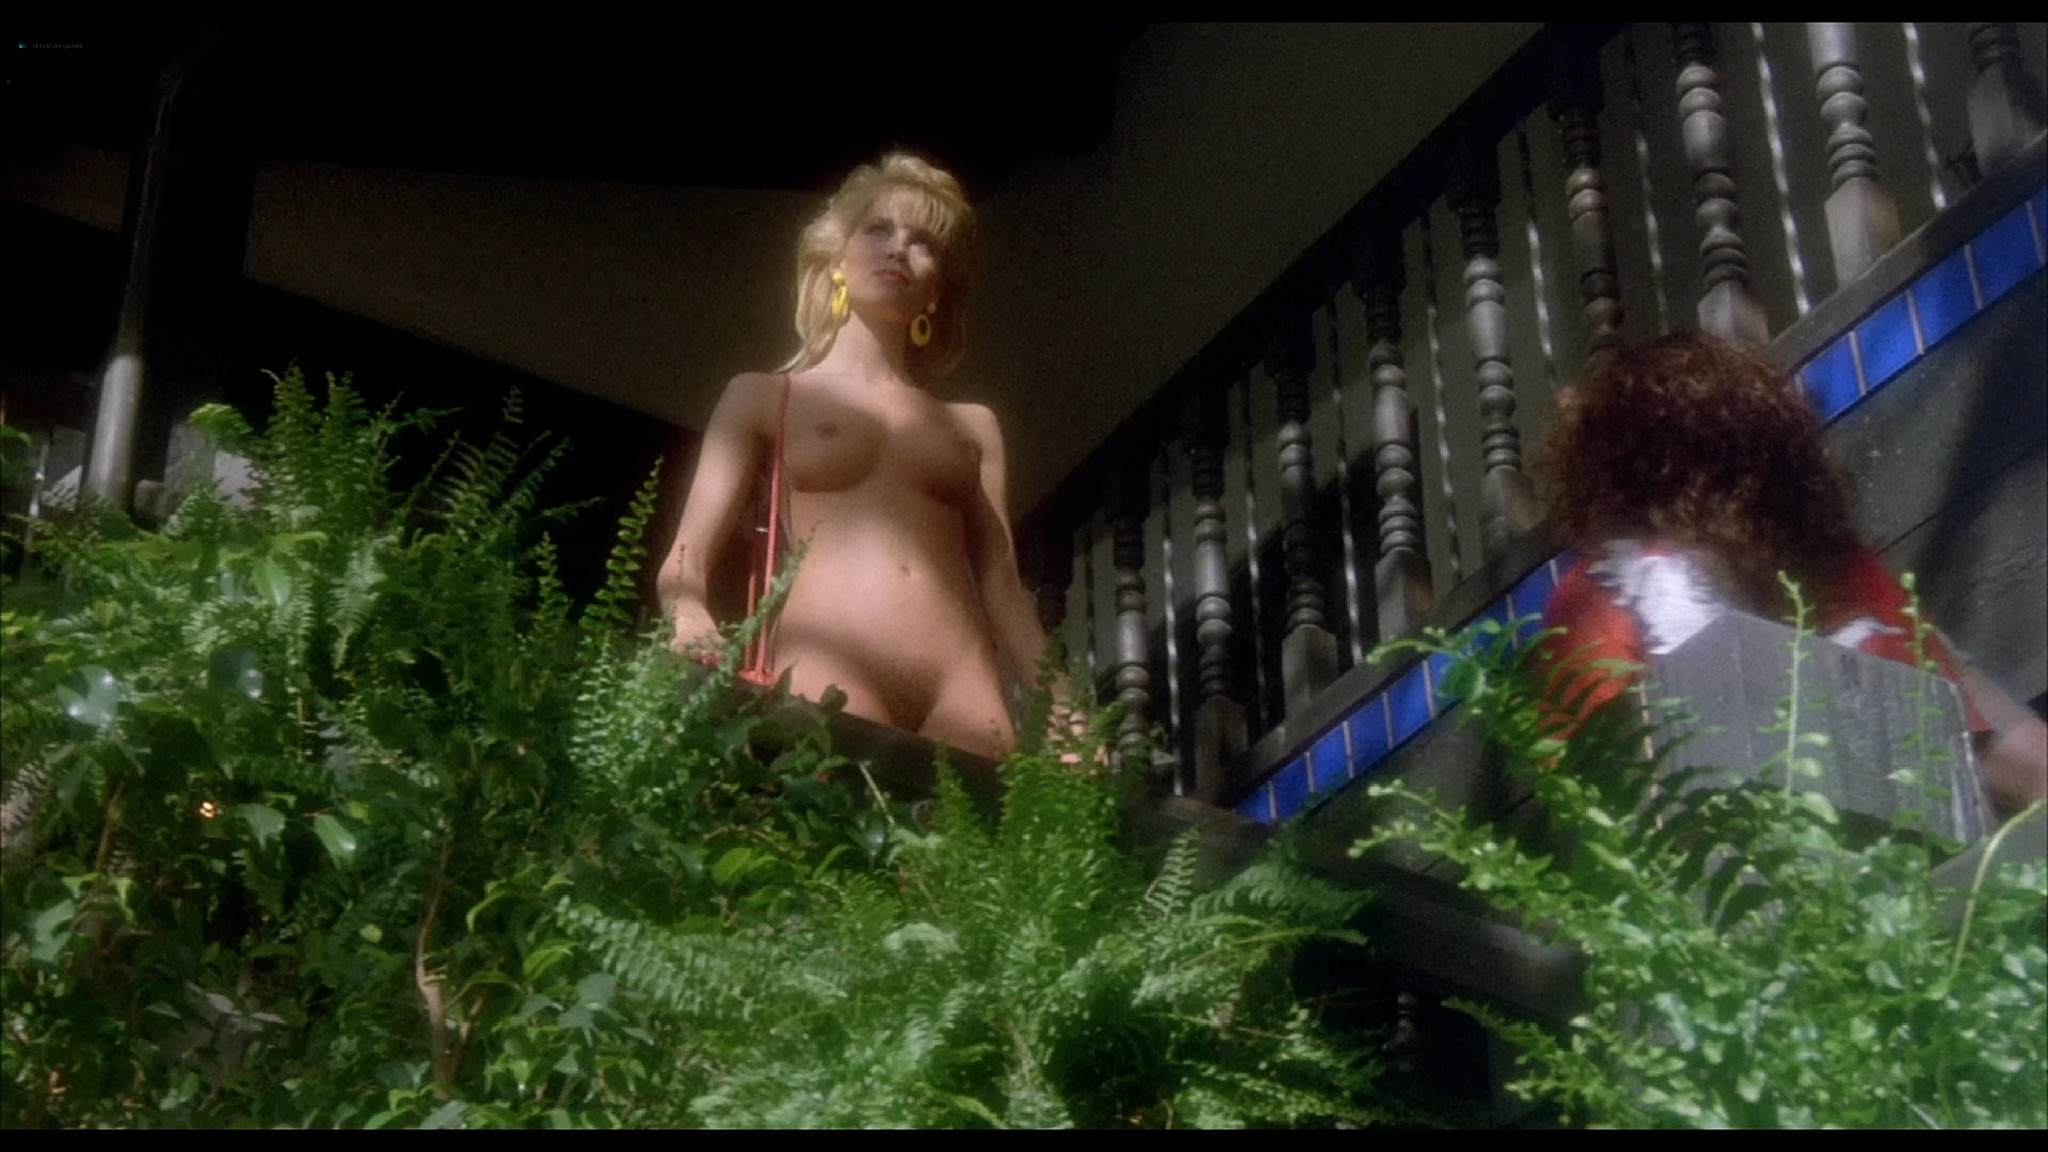 Monique Gabrielle nude full frontal Corinne Wahl and other nude and sexy Amazon Women on The Moon 1987 HD 1080p BluRay REMUX 004